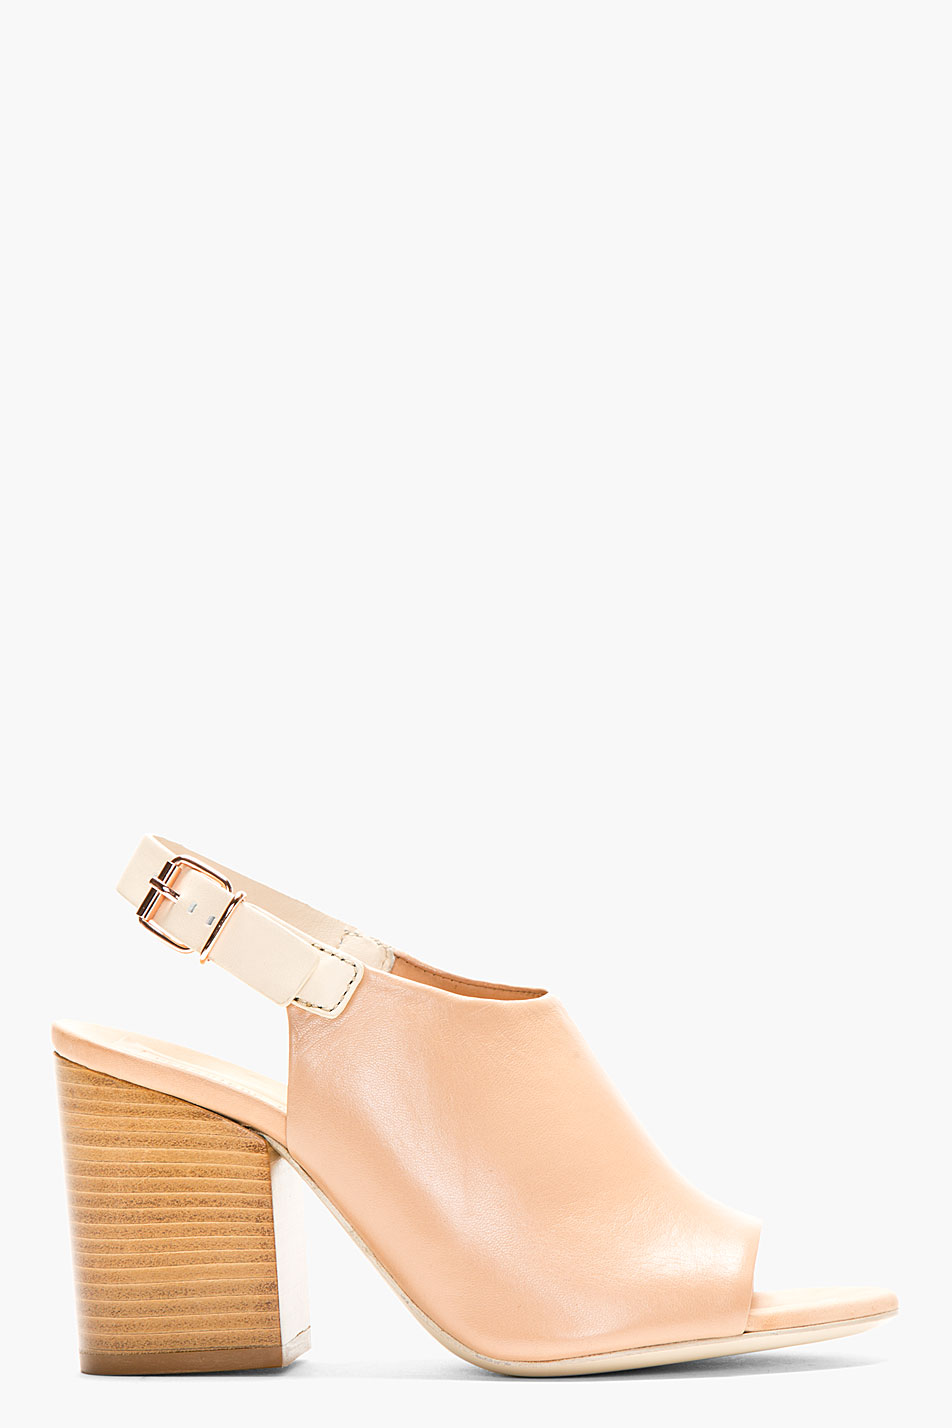 veronique branquinho nude leather slingback mule